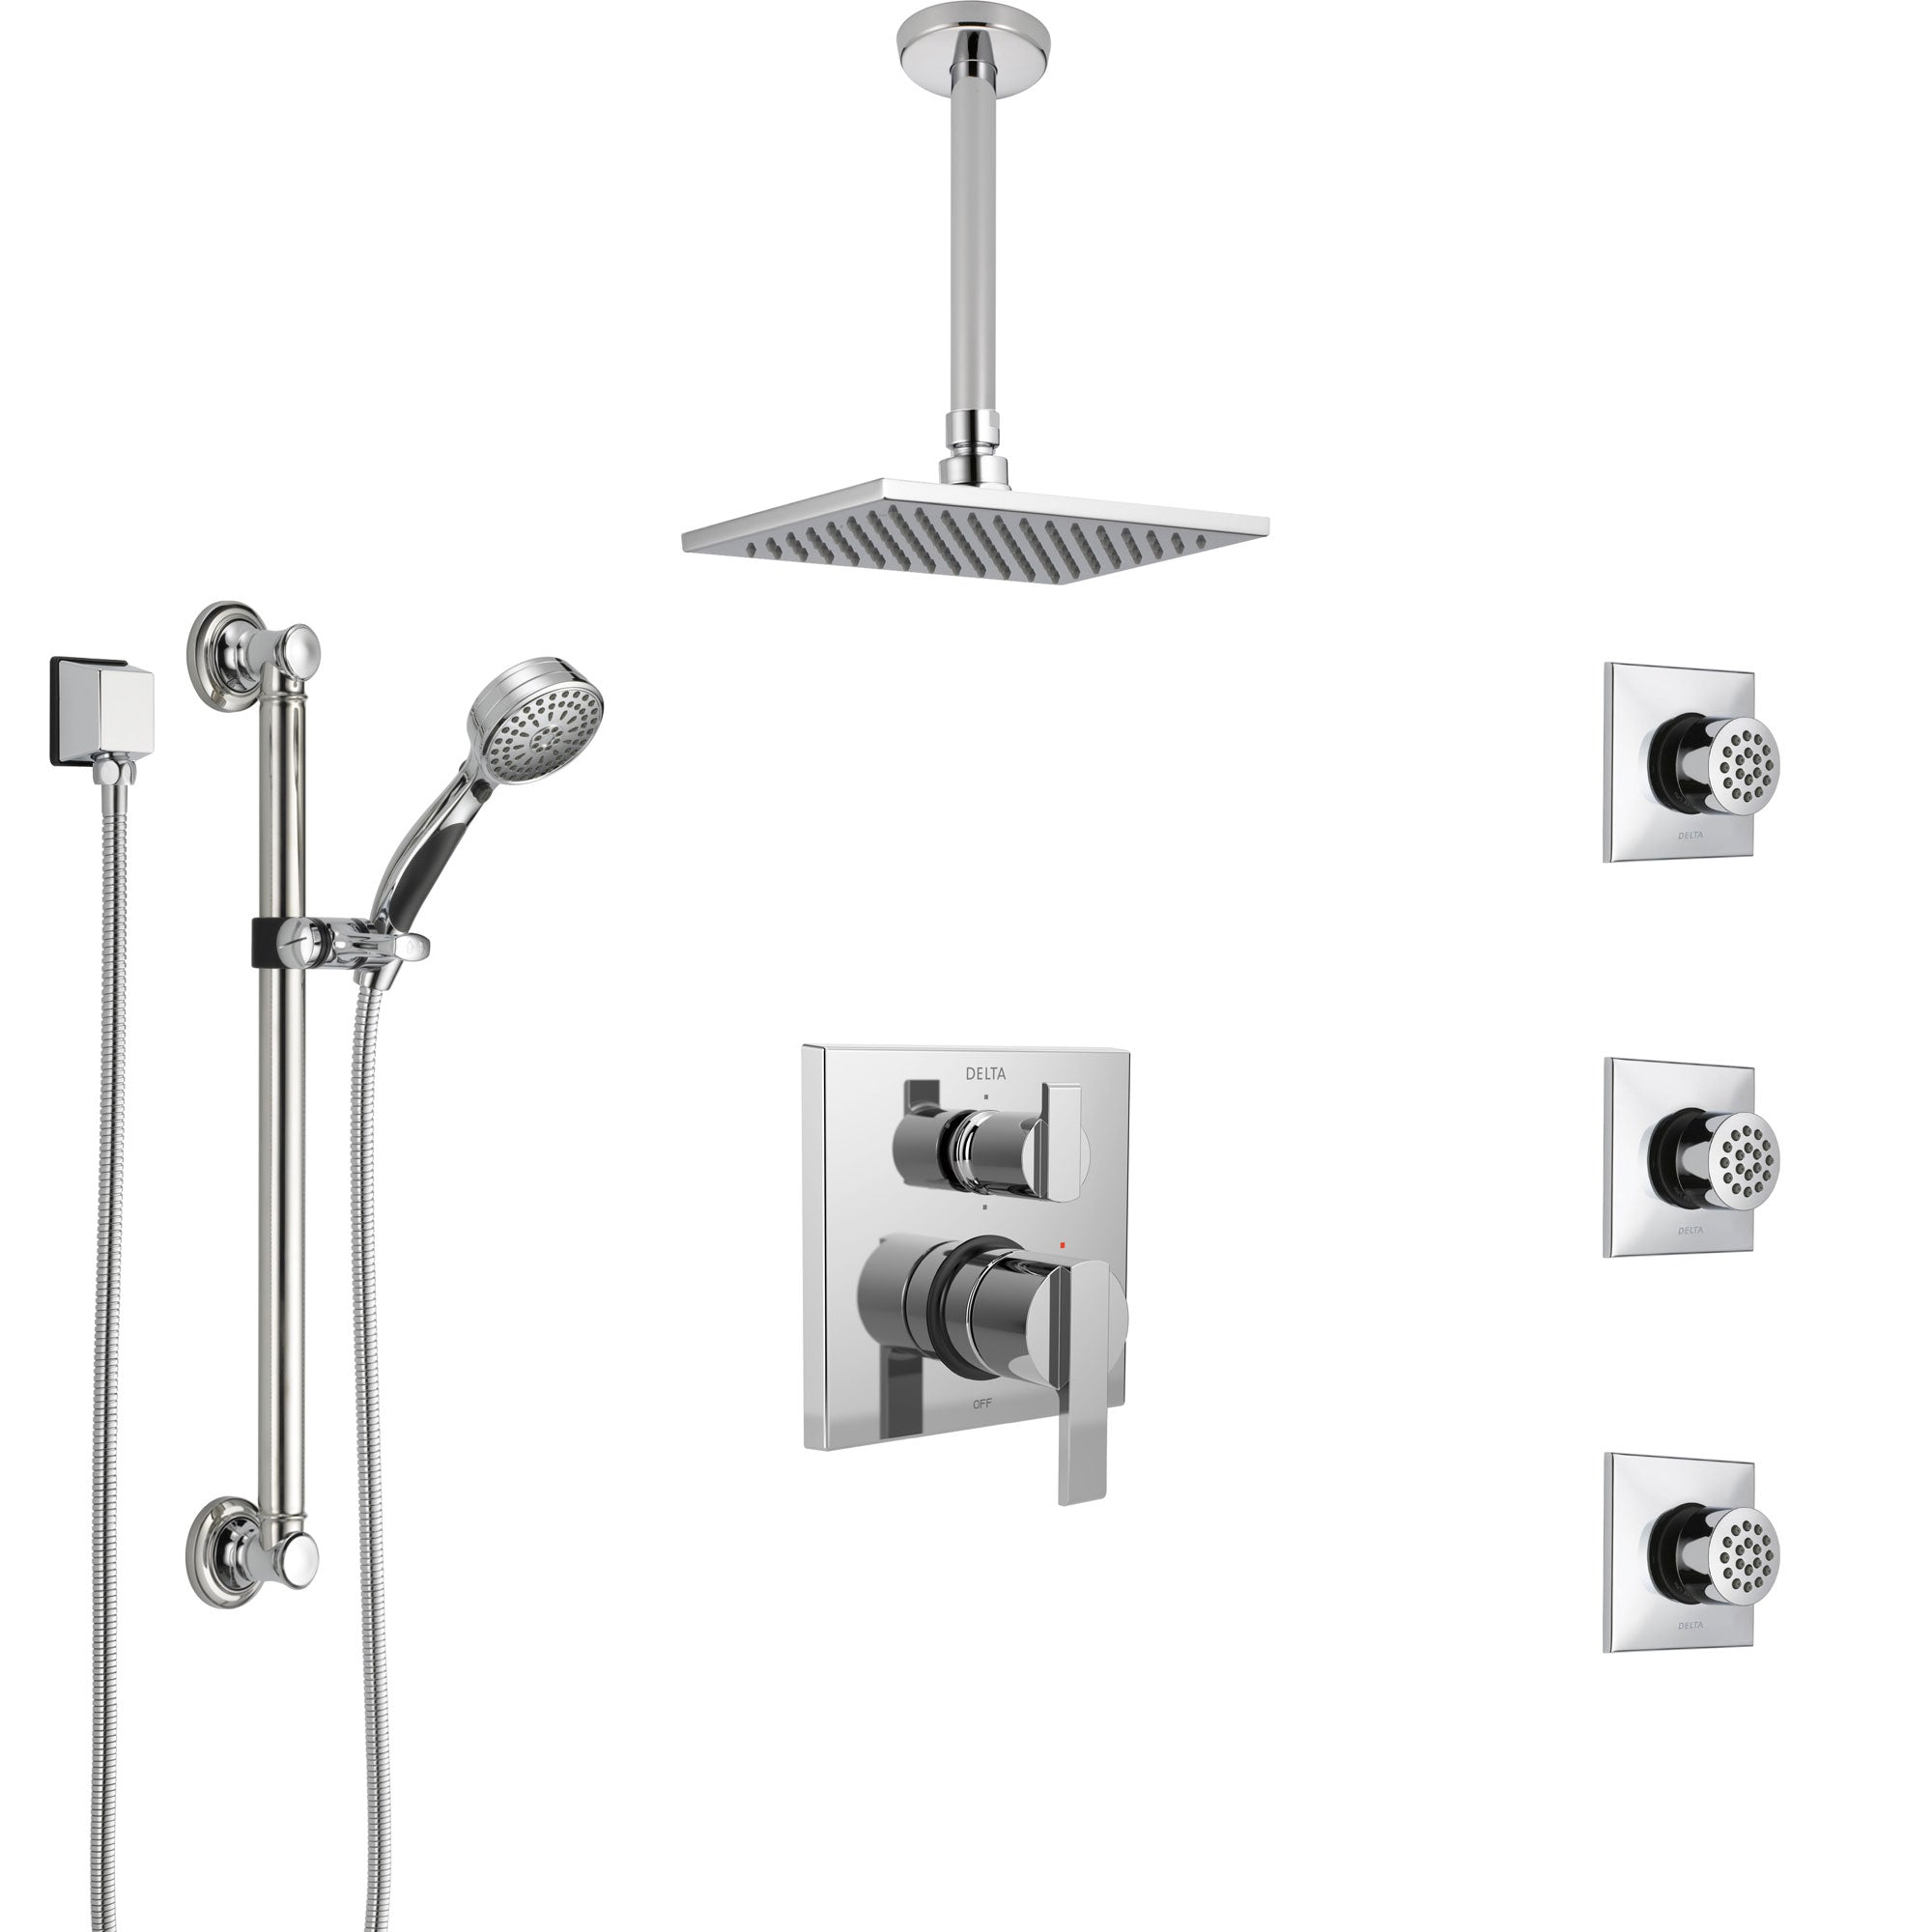 Delta Ara Chrome Shower System with Control Handle, Integrated Diverter, Ceiling Mount Showerhead, 3 Body Sprays, and Grab Bar Hand Shower SS2496710